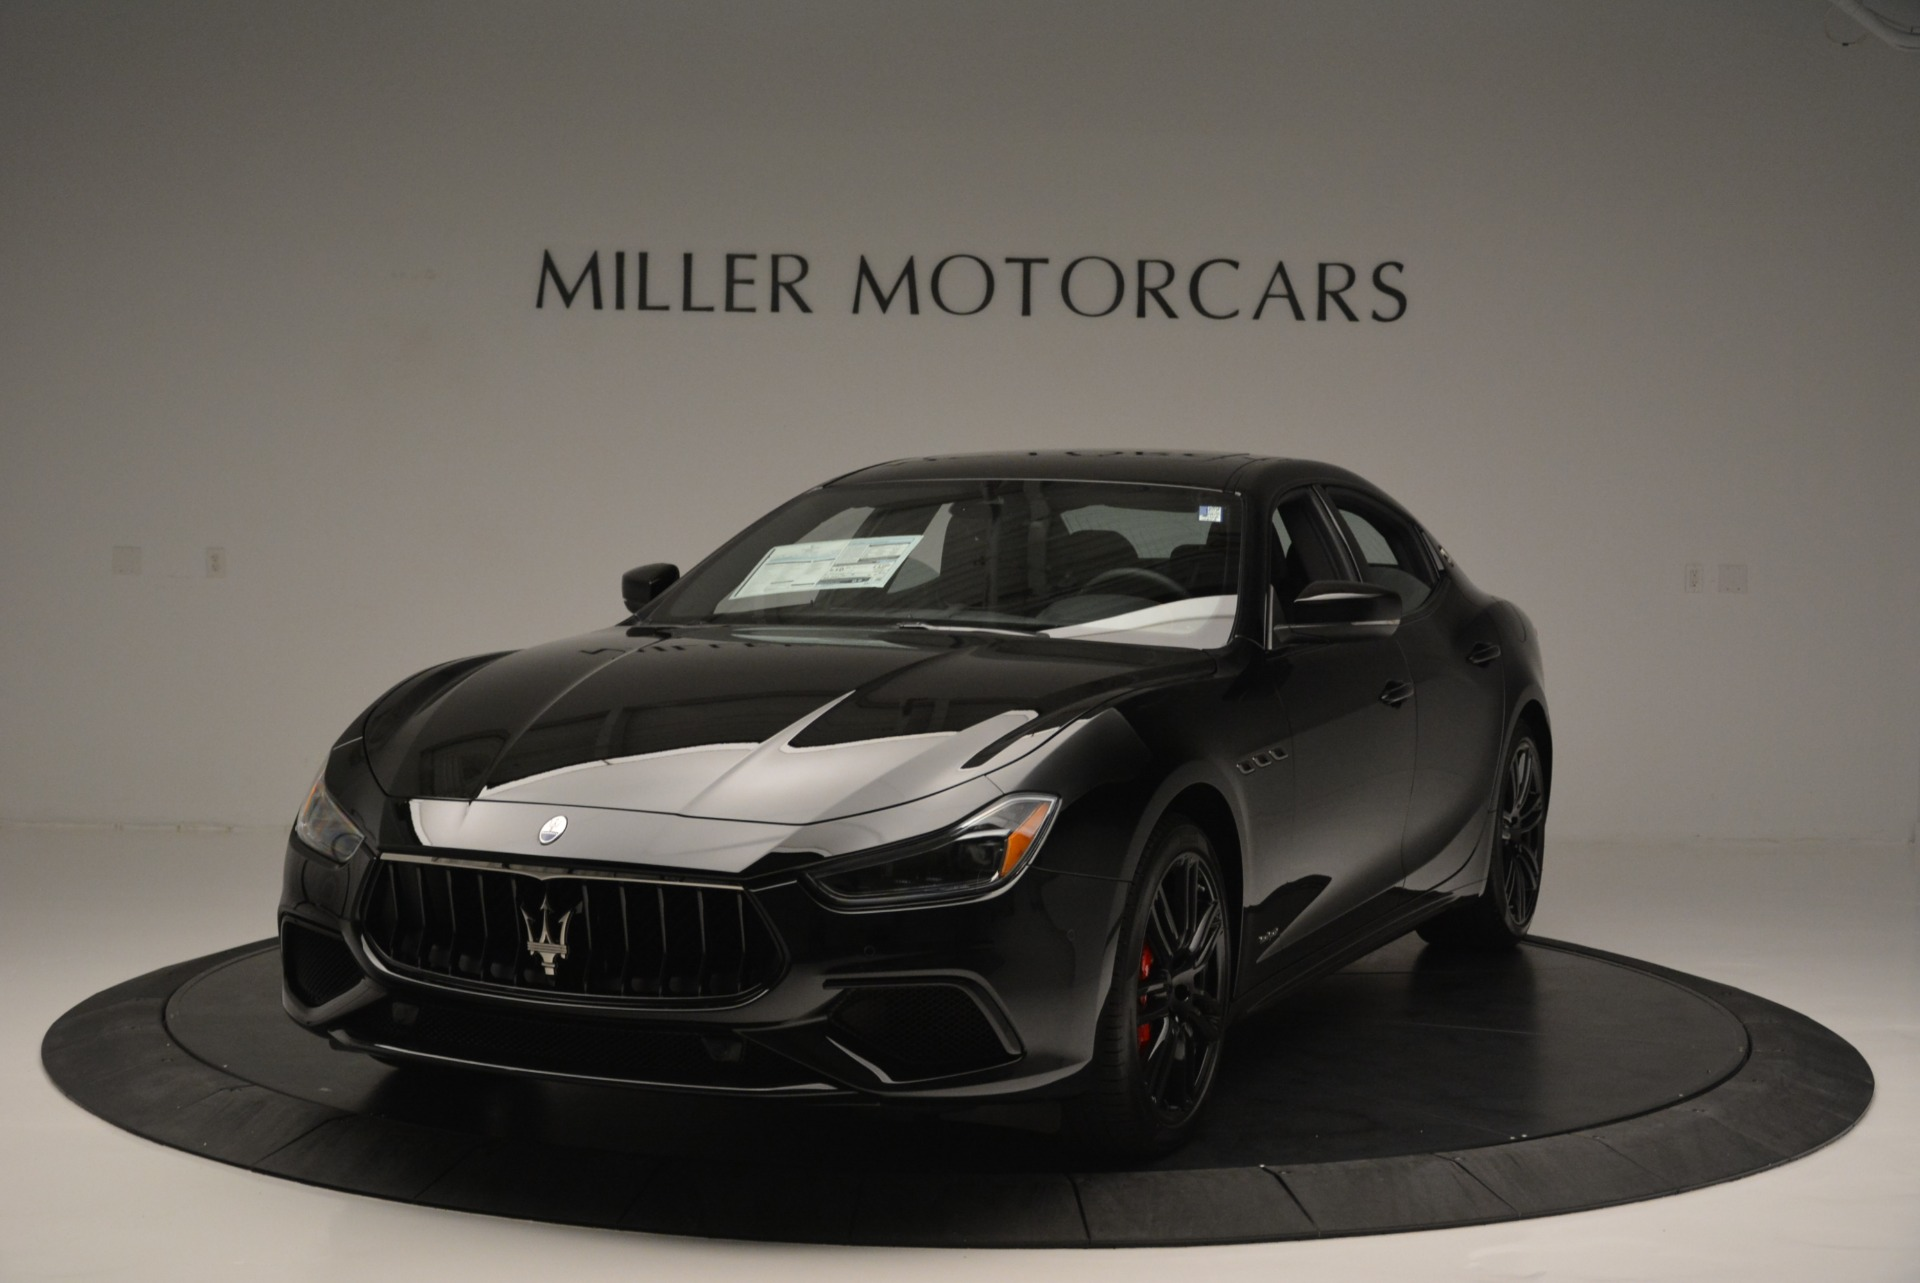 New 2018 Maserati Ghibli SQ4 GranSport Nerissimo for sale Sold at Alfa Romeo of Westport in Westport CT 06880 1